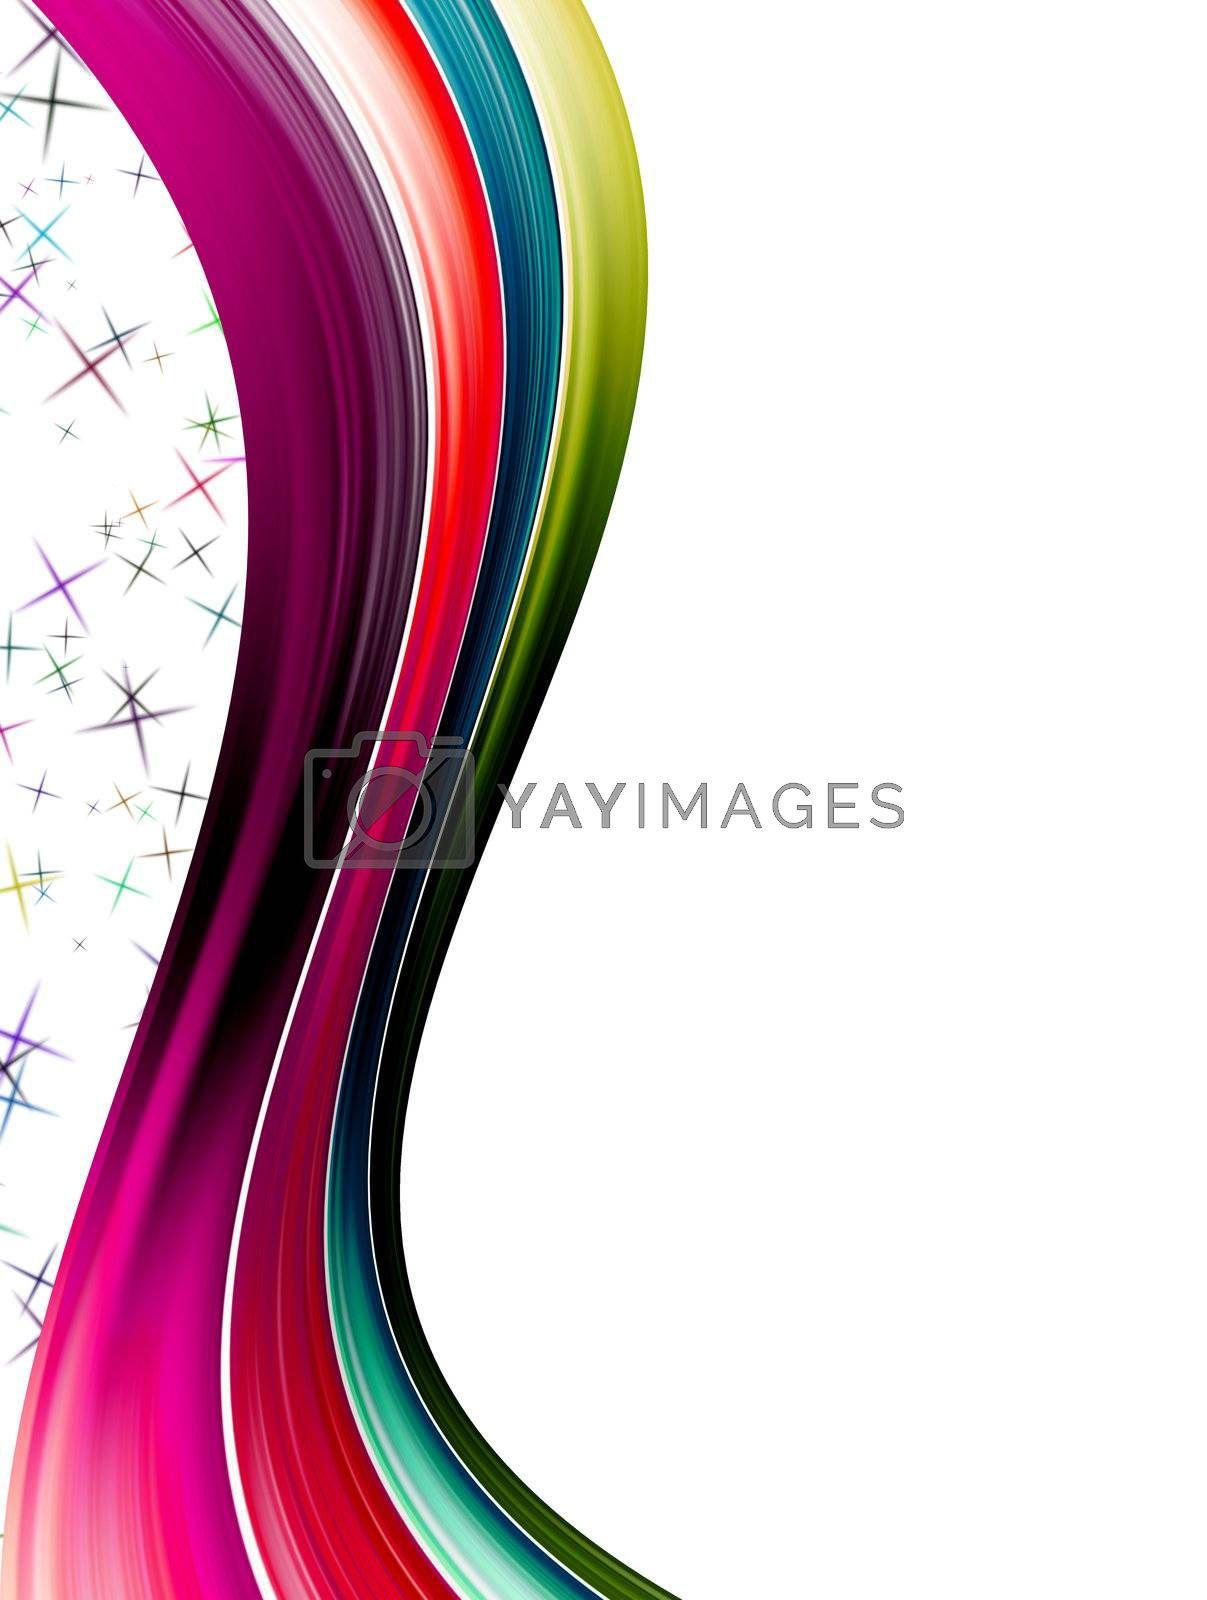 multicolor wave design, abstract illustration